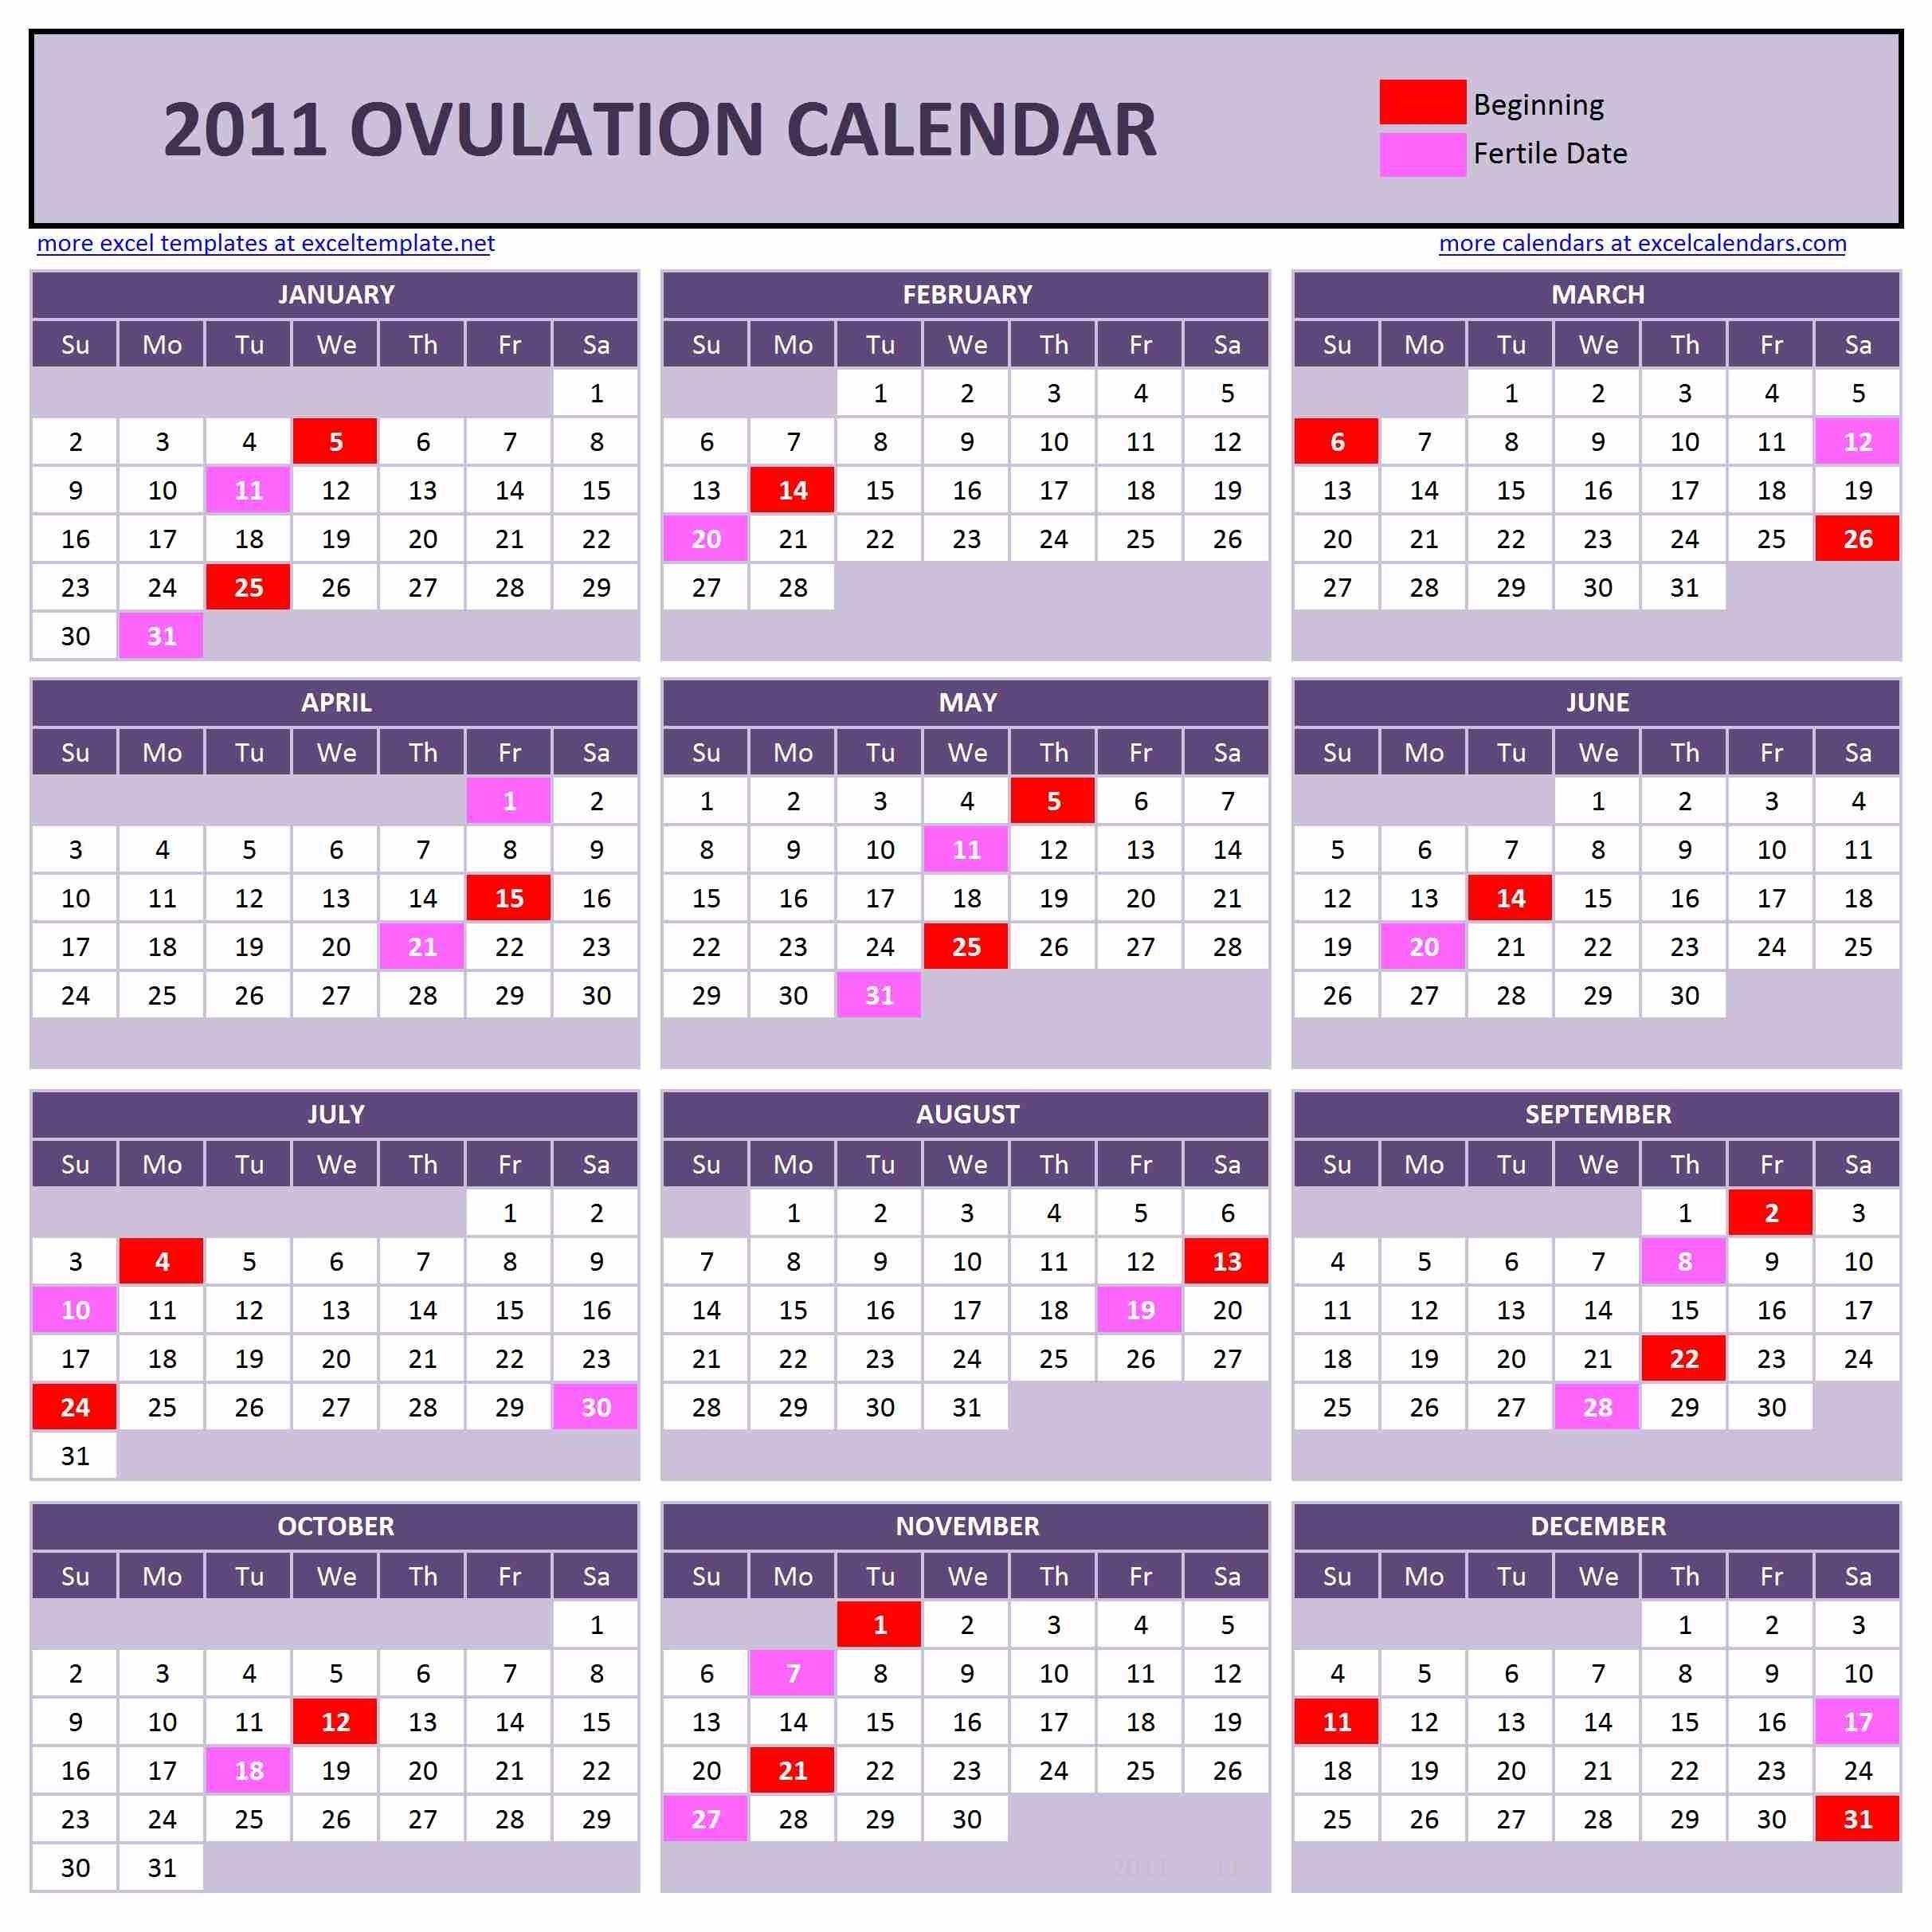 Ovulation Calendar 3 Week Cycle | Ten Free Printable Calendar 2020-2021